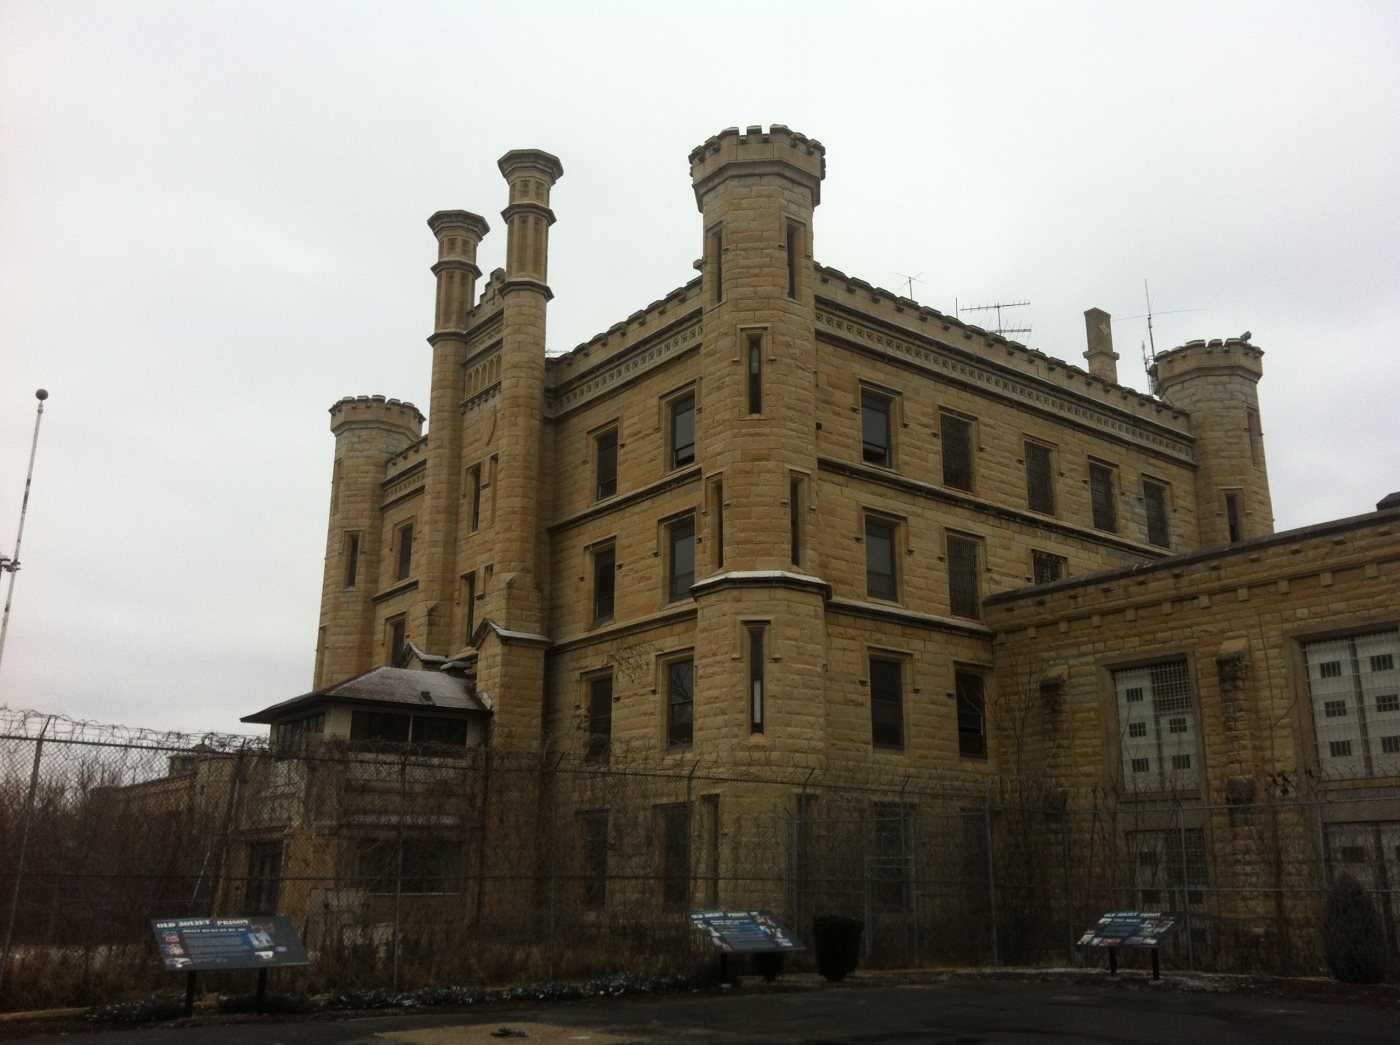 Old Joliet Prison – Joliet, IL – Get Out And Travel